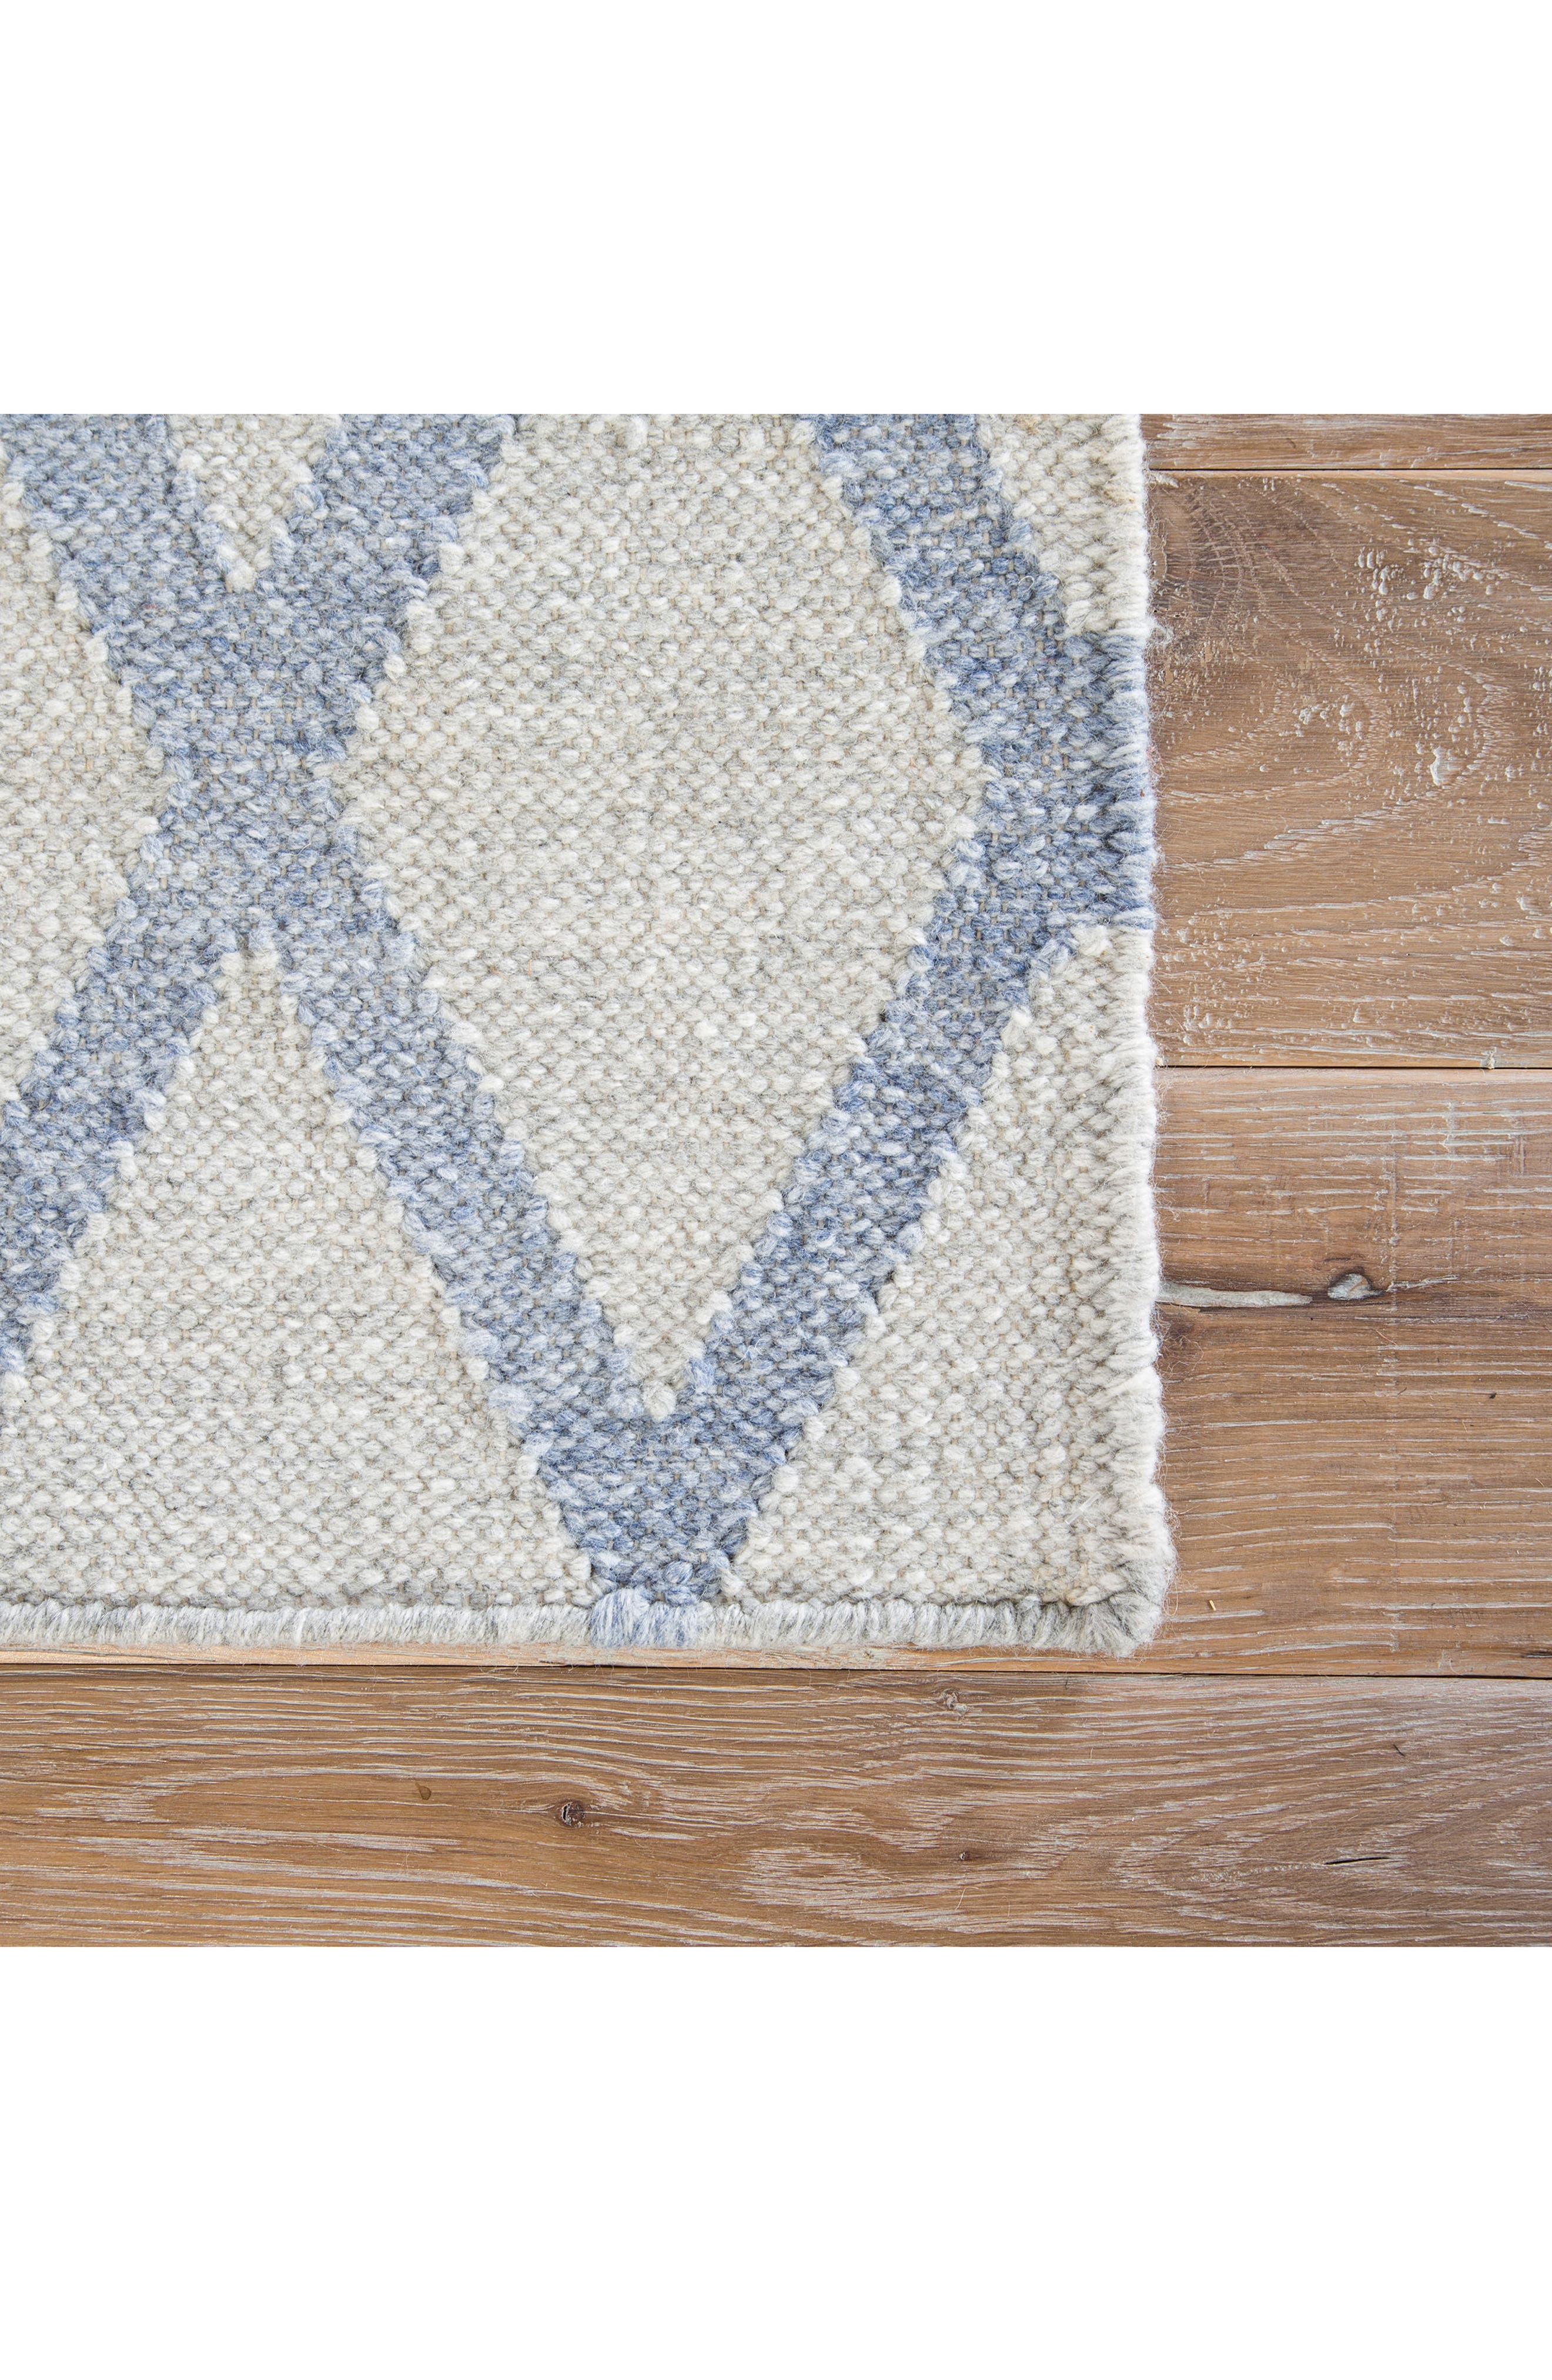 Pyramid Blocks Rug,                             Alternate thumbnail 5, color,                             Faded Denim/ Oatmeal